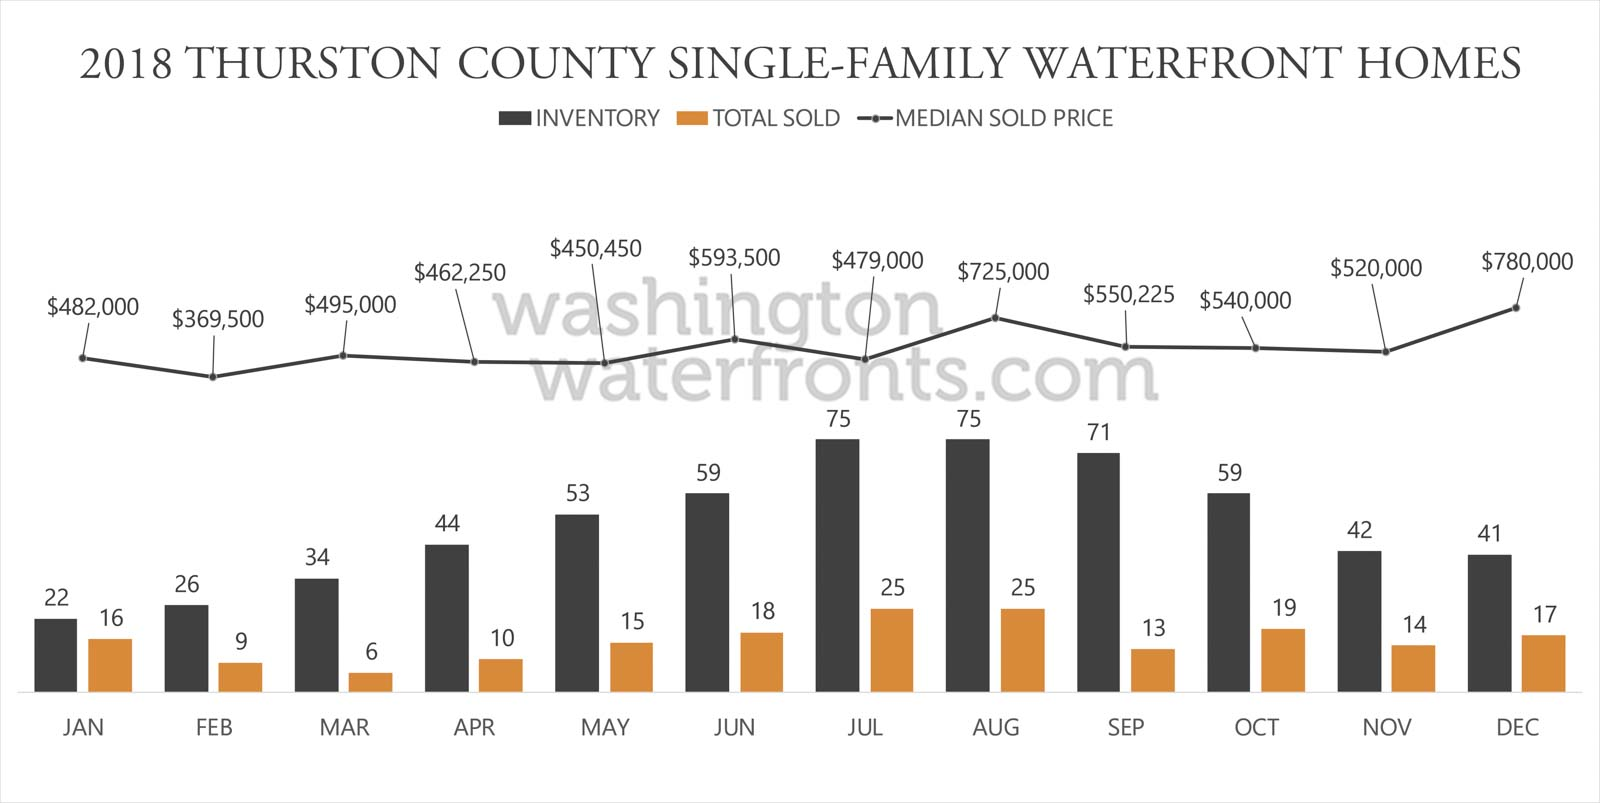 Thurston County Waterfront Inventory